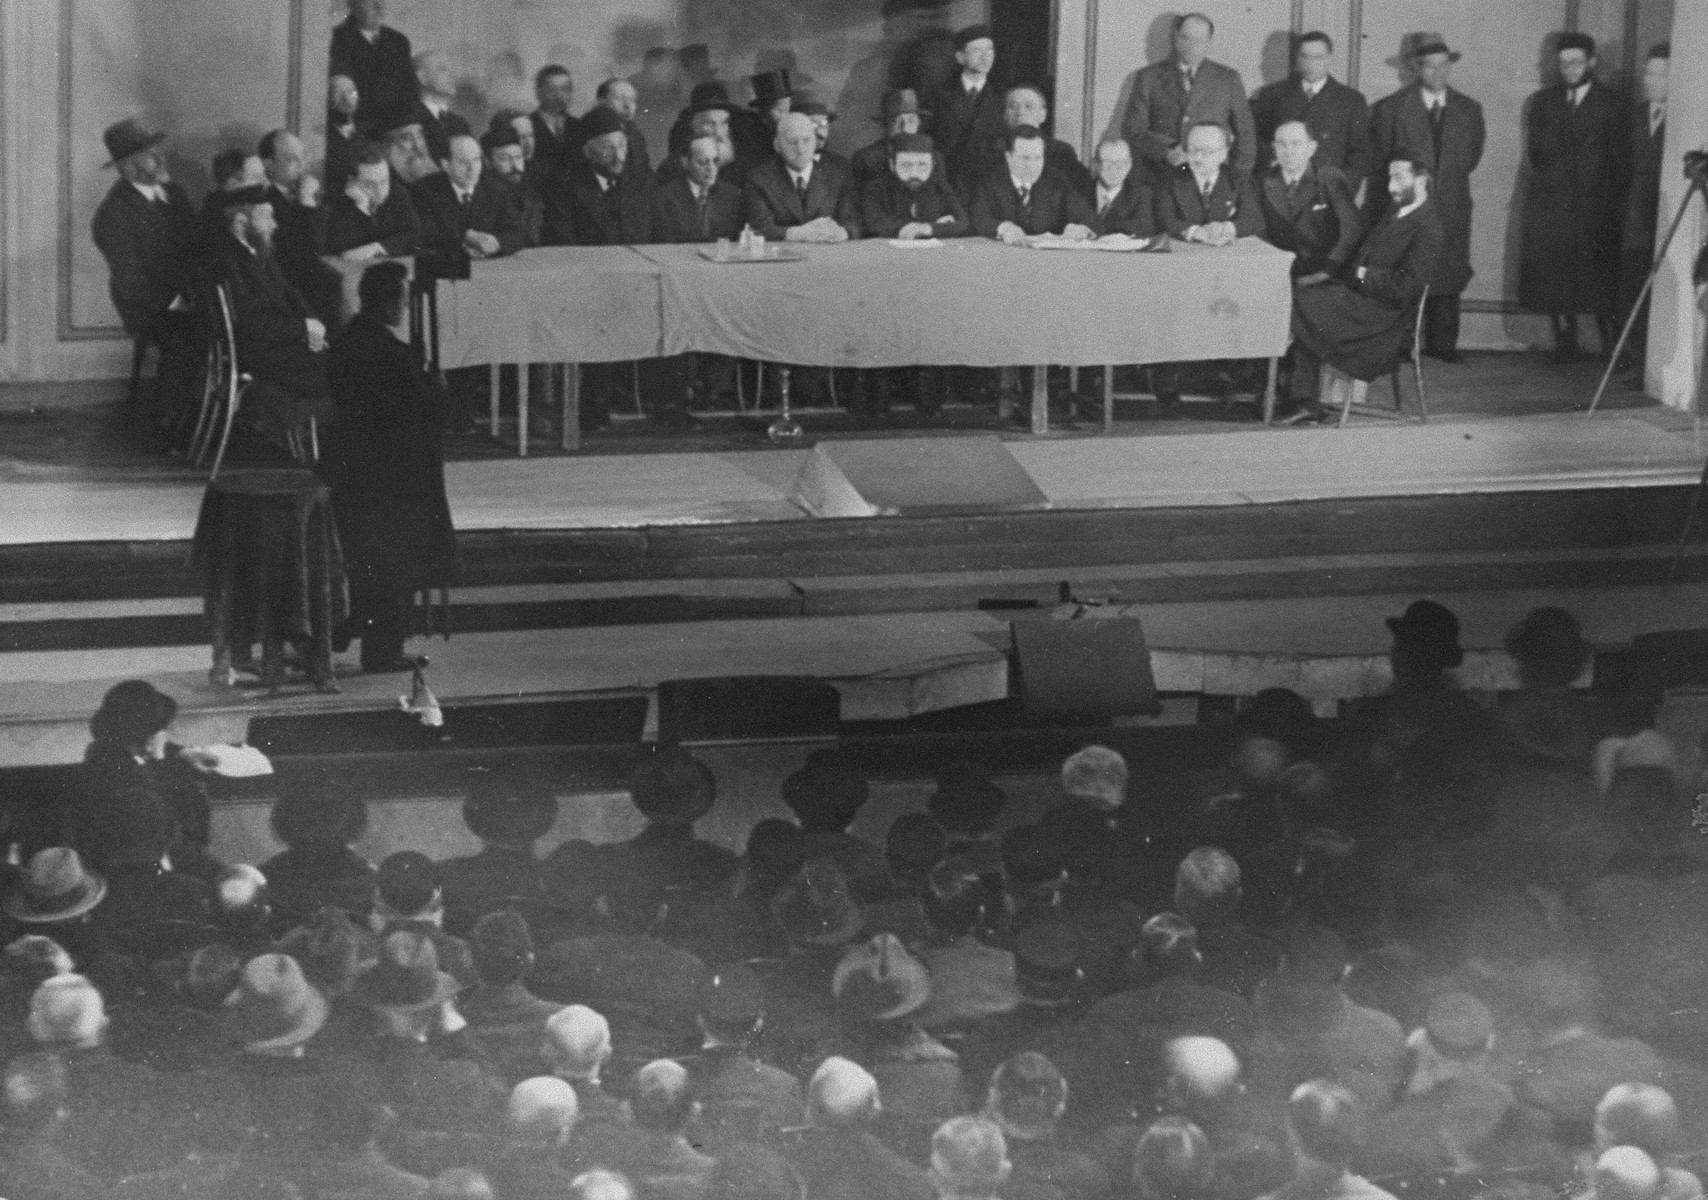 View of the speakers' podium during a public meeting to protest the enactment of anti-Jewish legislation by the Nazi regime in the Jewish Theater in Warsaw.